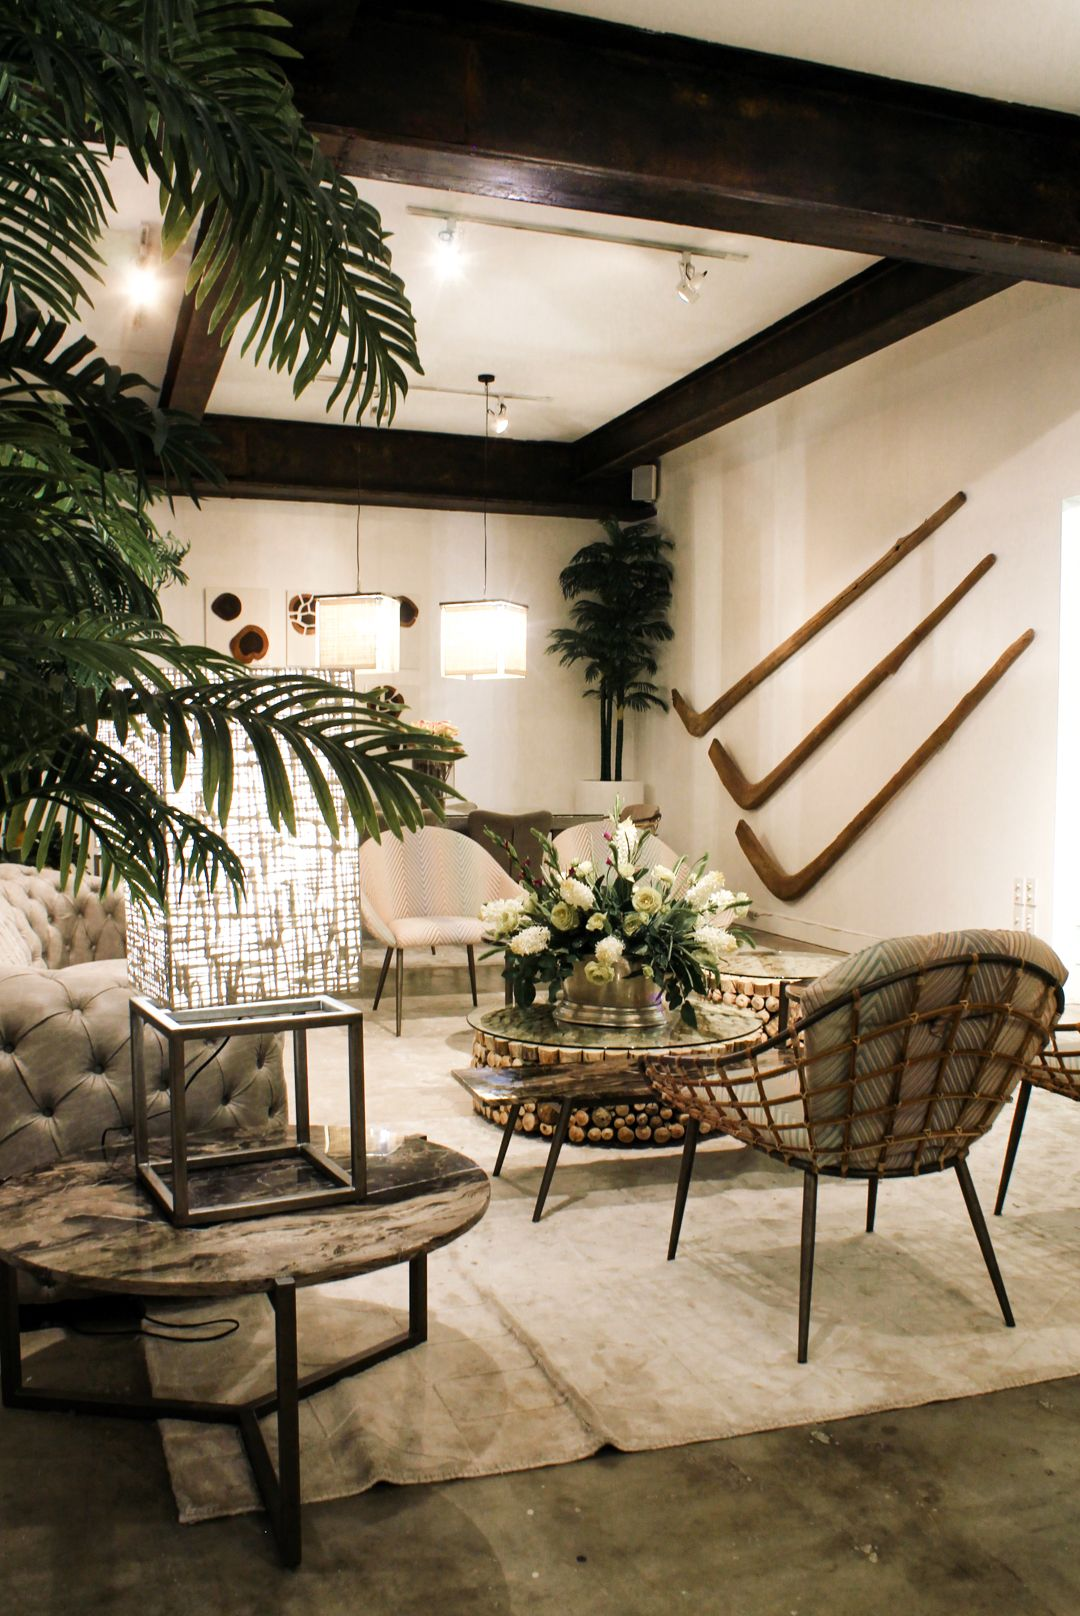 Fashion Interiors Interior Design Showroom In Manila That Will Leave You In Awe White Wall Decor Interior Interior Design [ 1616 x 1080 Pixel ]